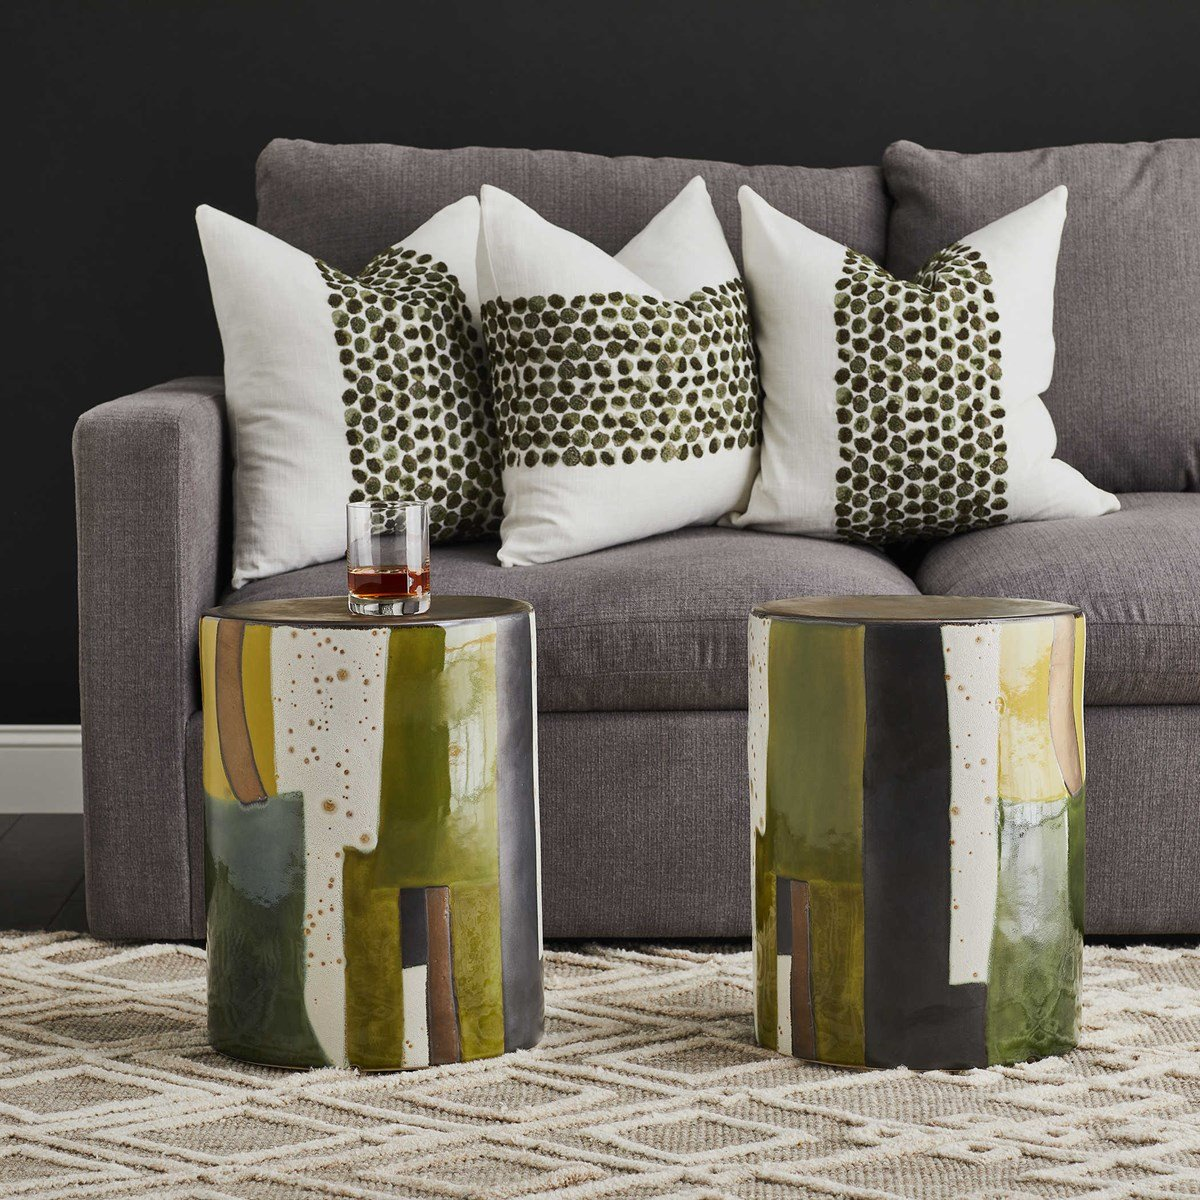 Abstract, color-block stools are chic and right on color trend for 2021